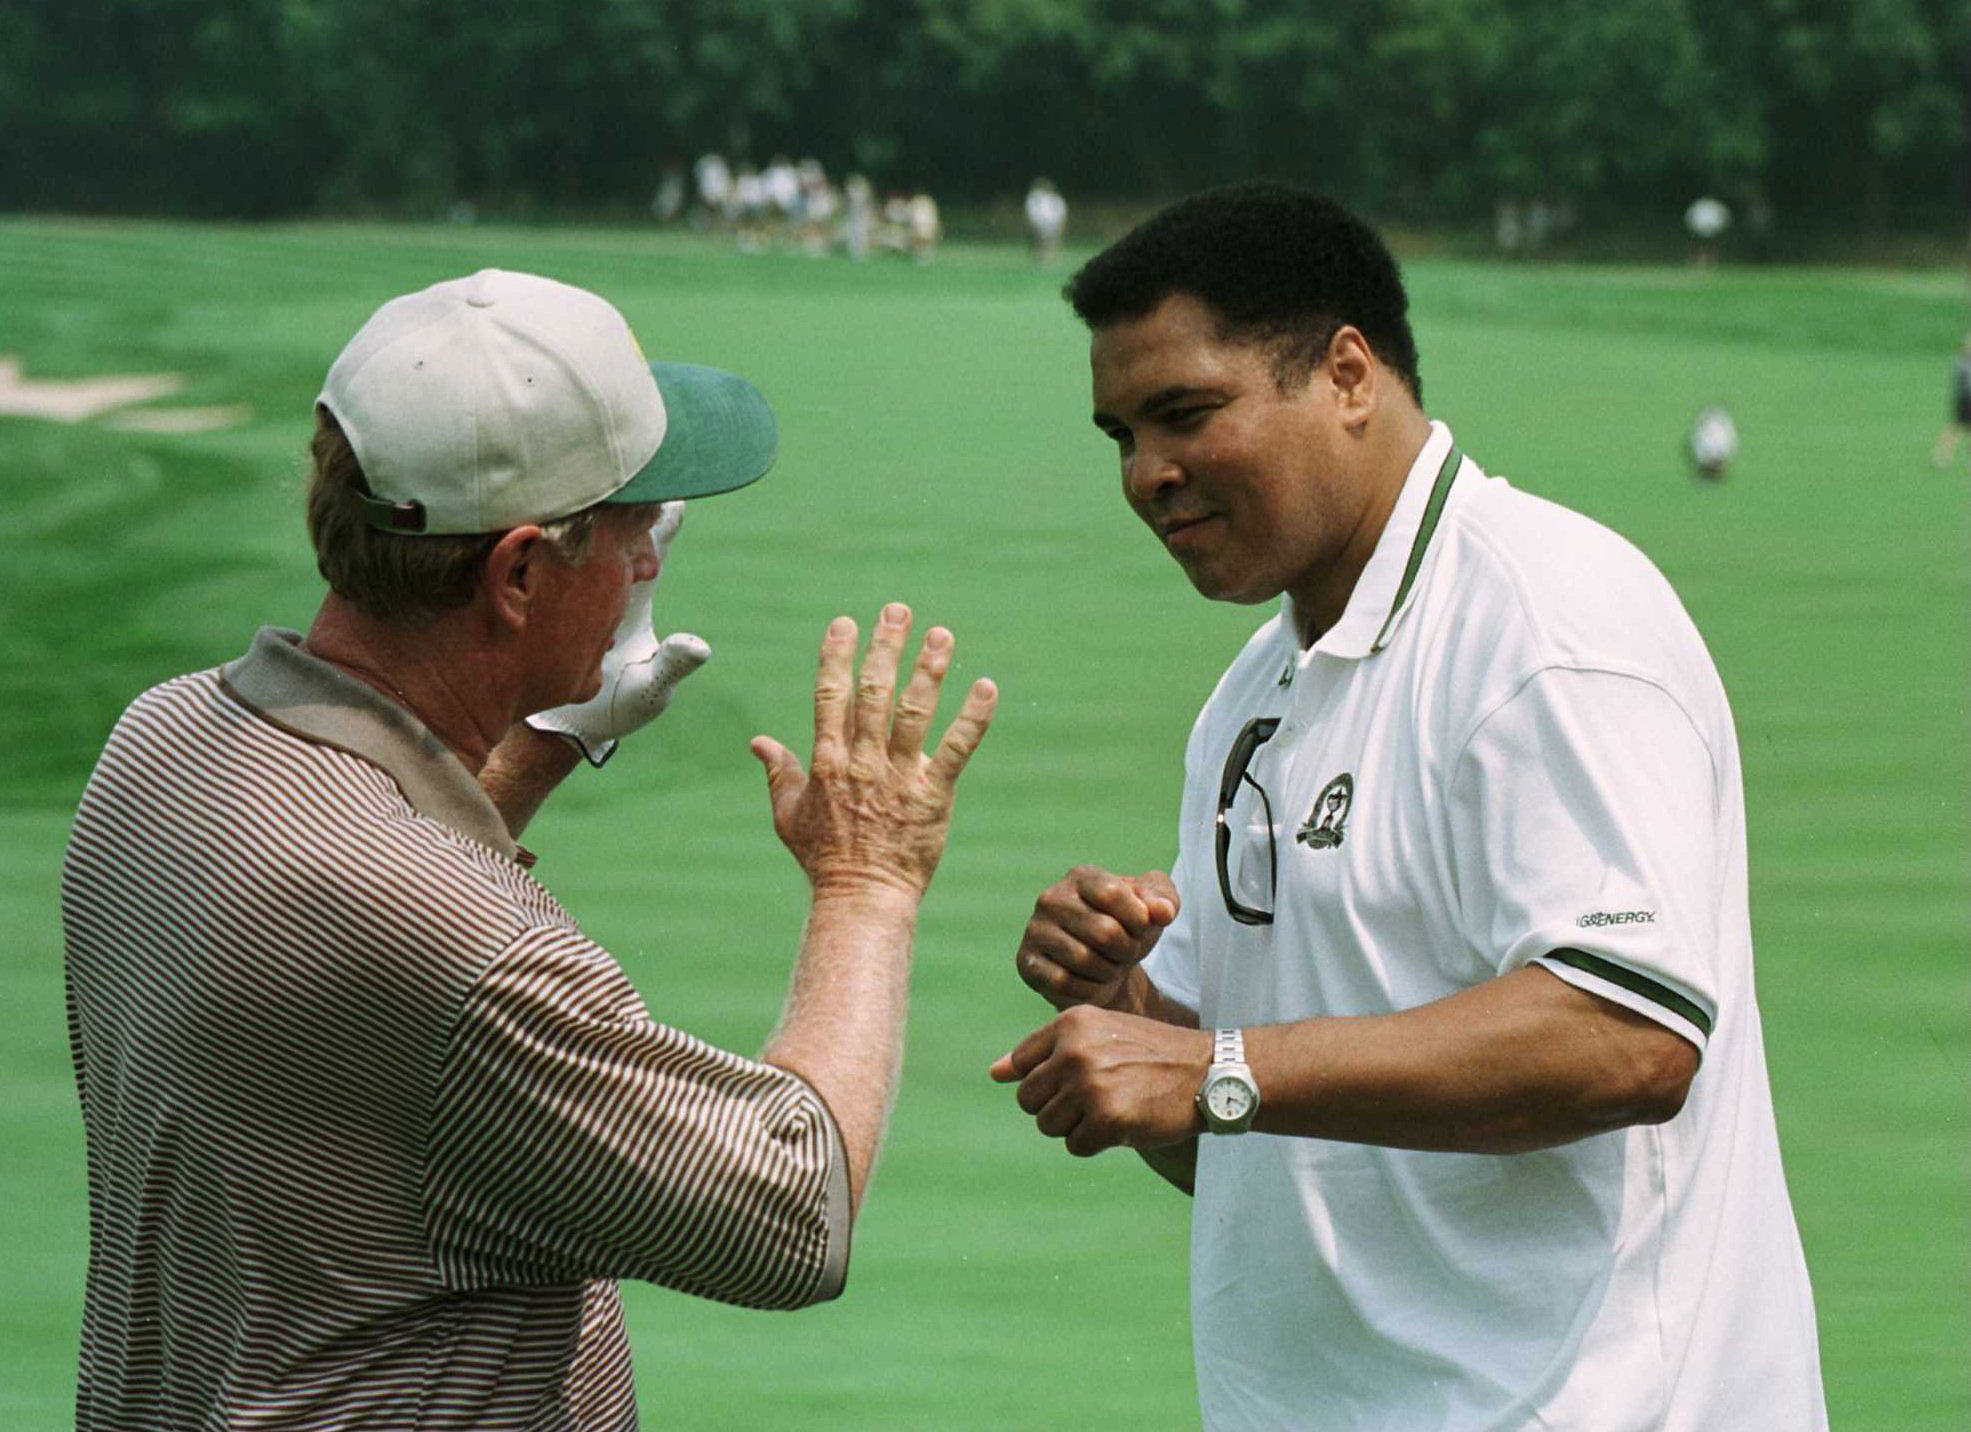 "1996                        With Kentucky hosting its first golf major since the 1952 PGA, the presence of Louisville legend Muhammad Ali does not go unnoticed. On tournament eve, a friendly shadow-boxing match breaks out between Ali and Jack Nicklaus, two titans with claims to the title ""Greatest of All Time."""